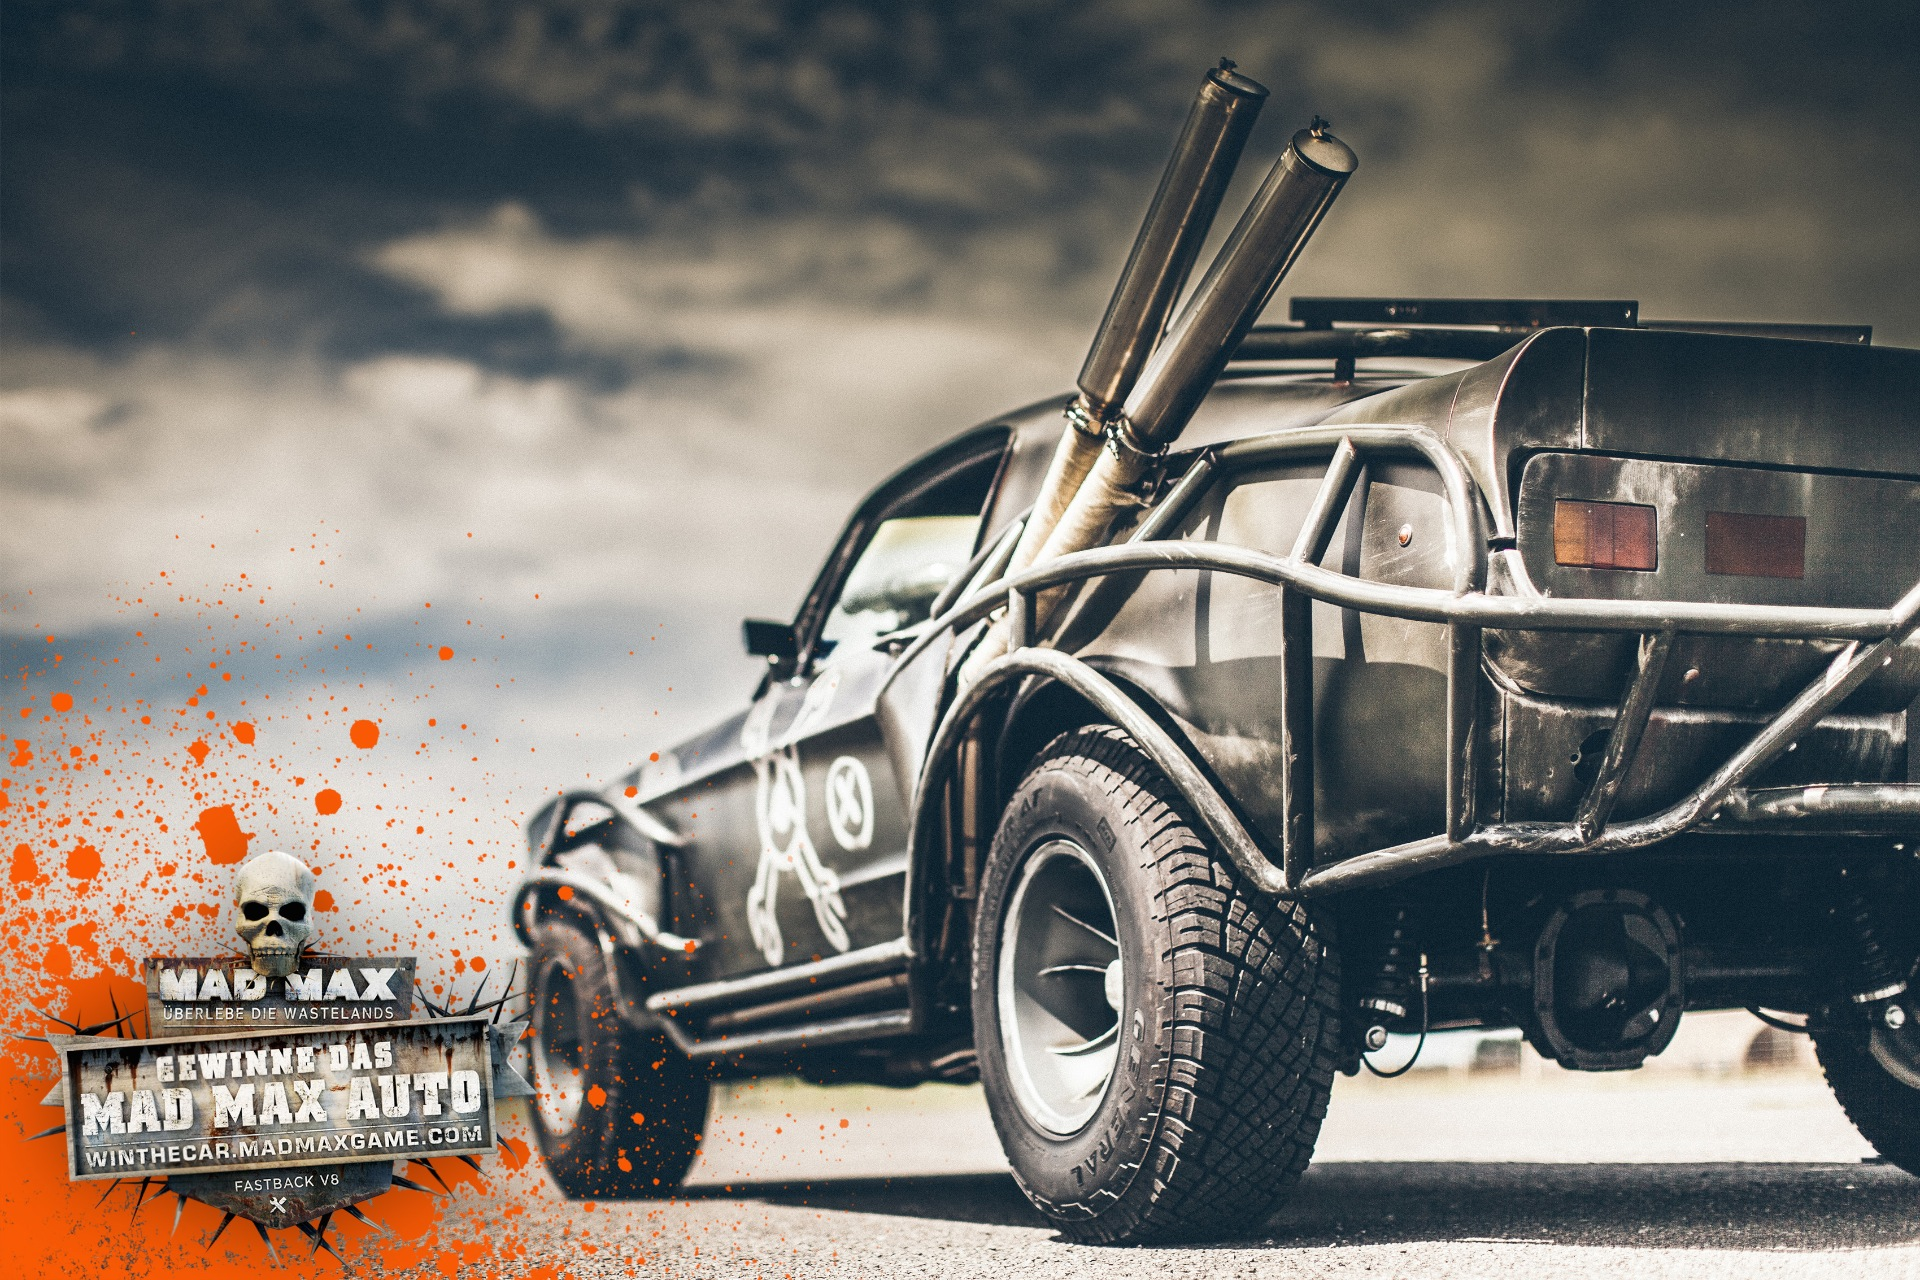 You can win mad maxs actual magnum opus mustang xbox one xbox